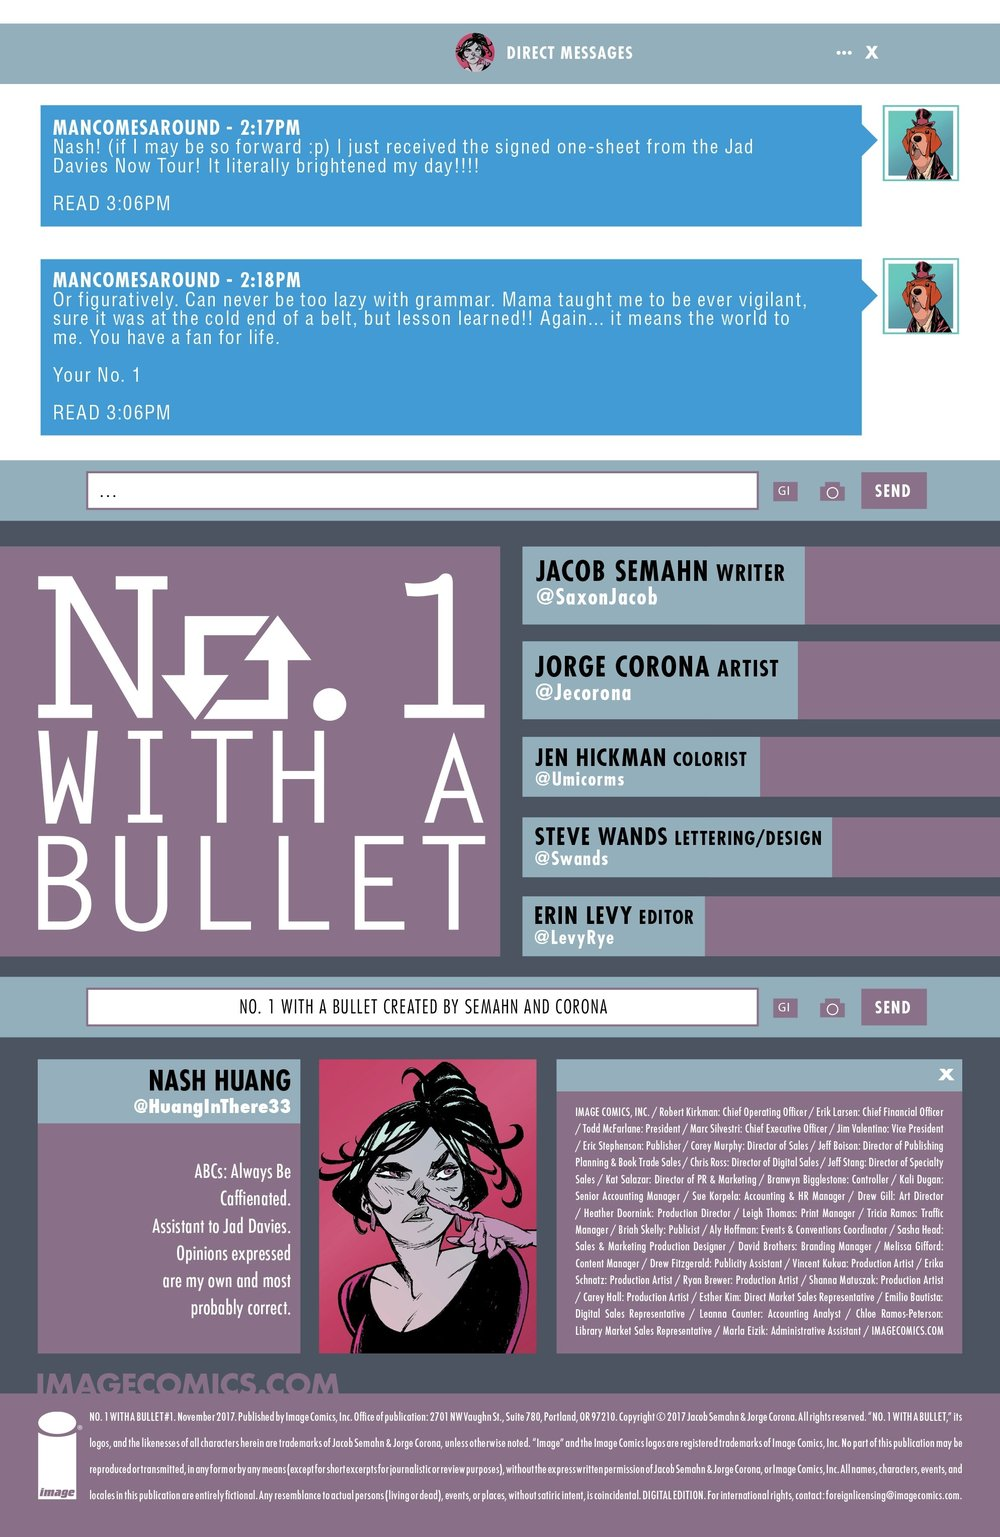 No. 1 With A Bullet 001 (2017) 2.jpg